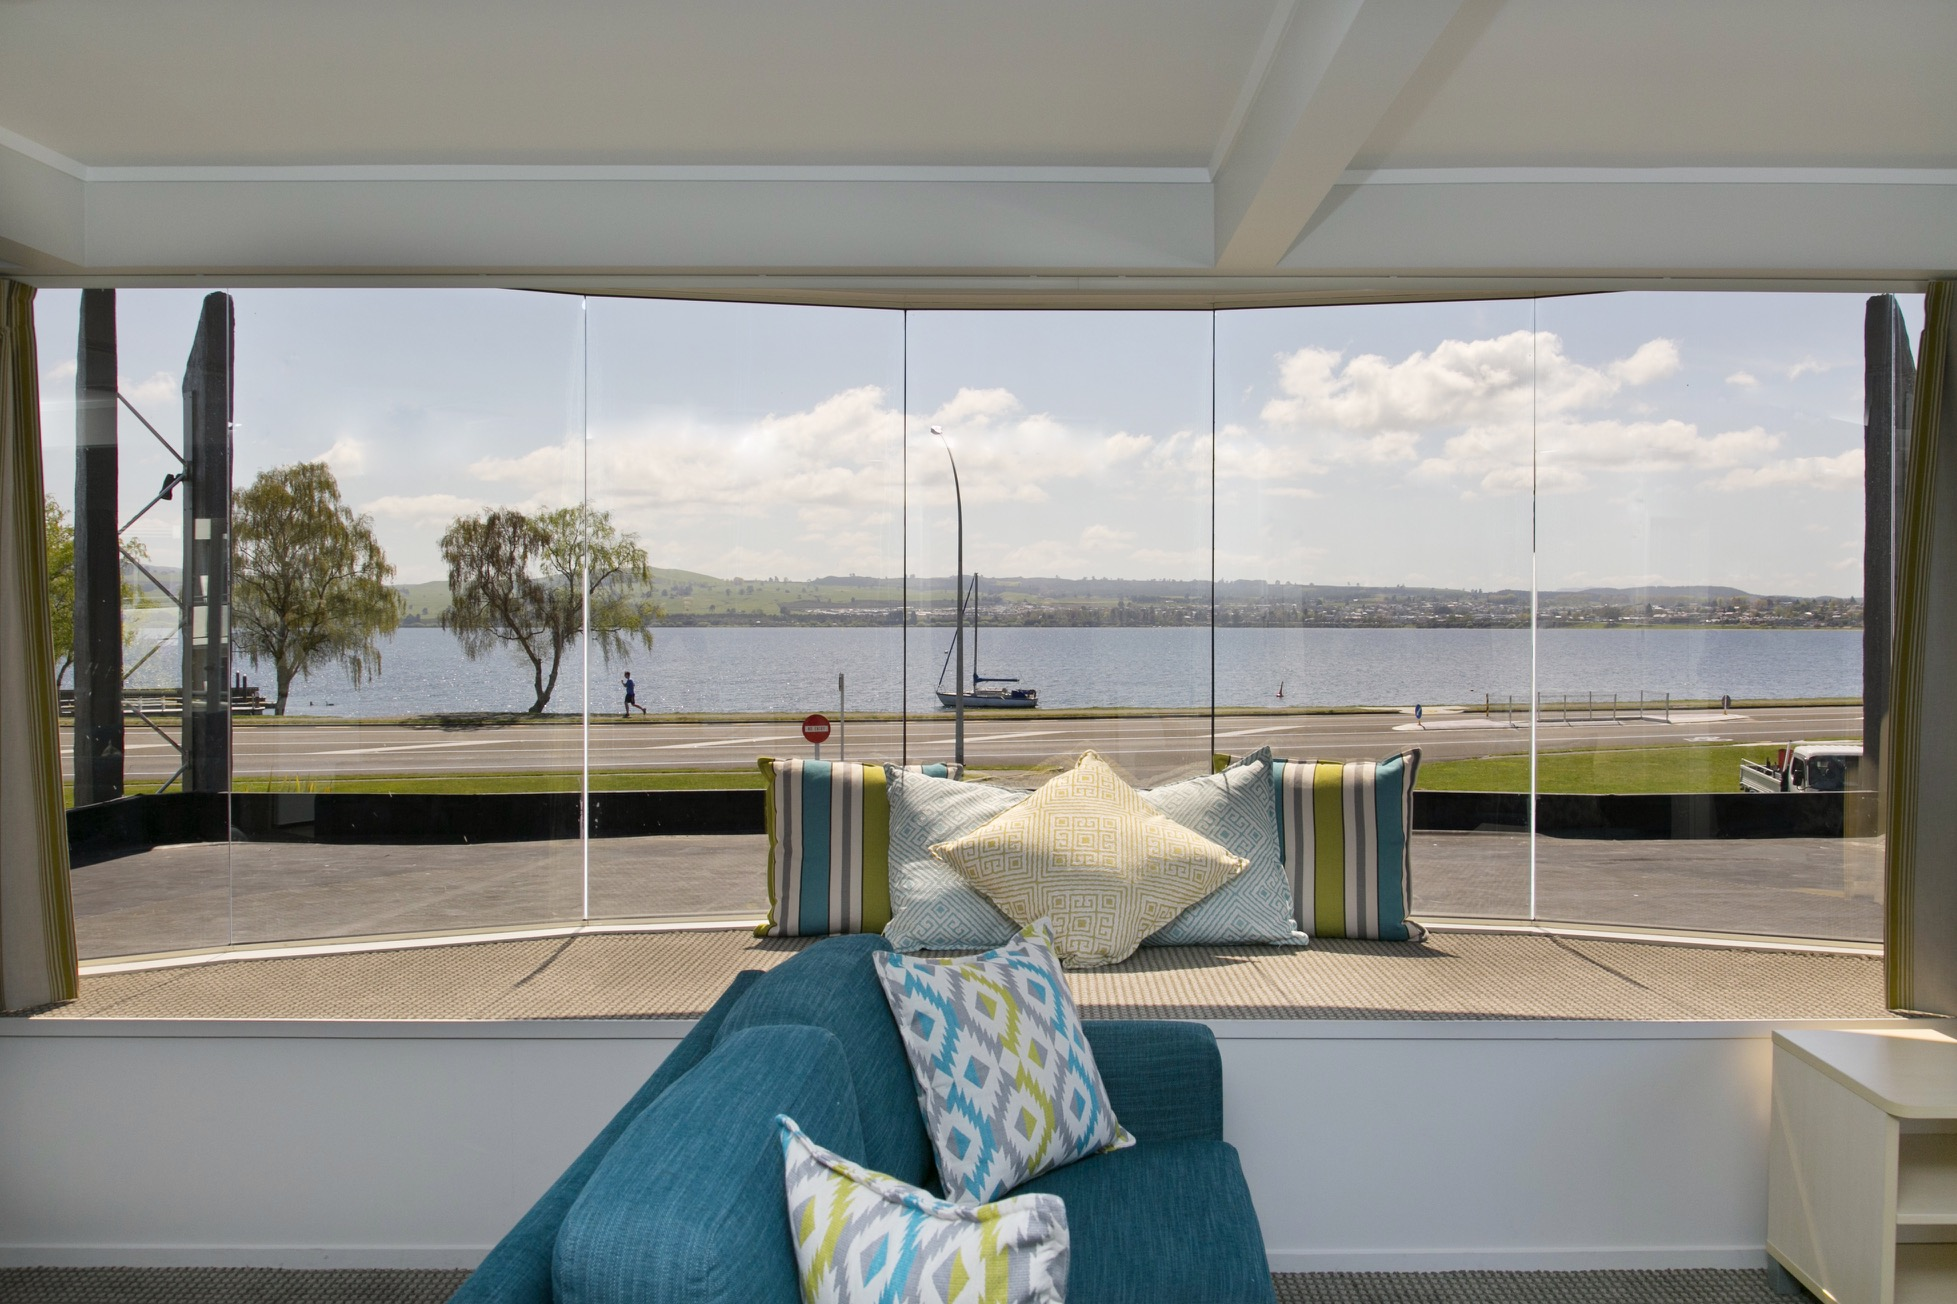 One bedroom unit with views of lake taupo from large bay windows